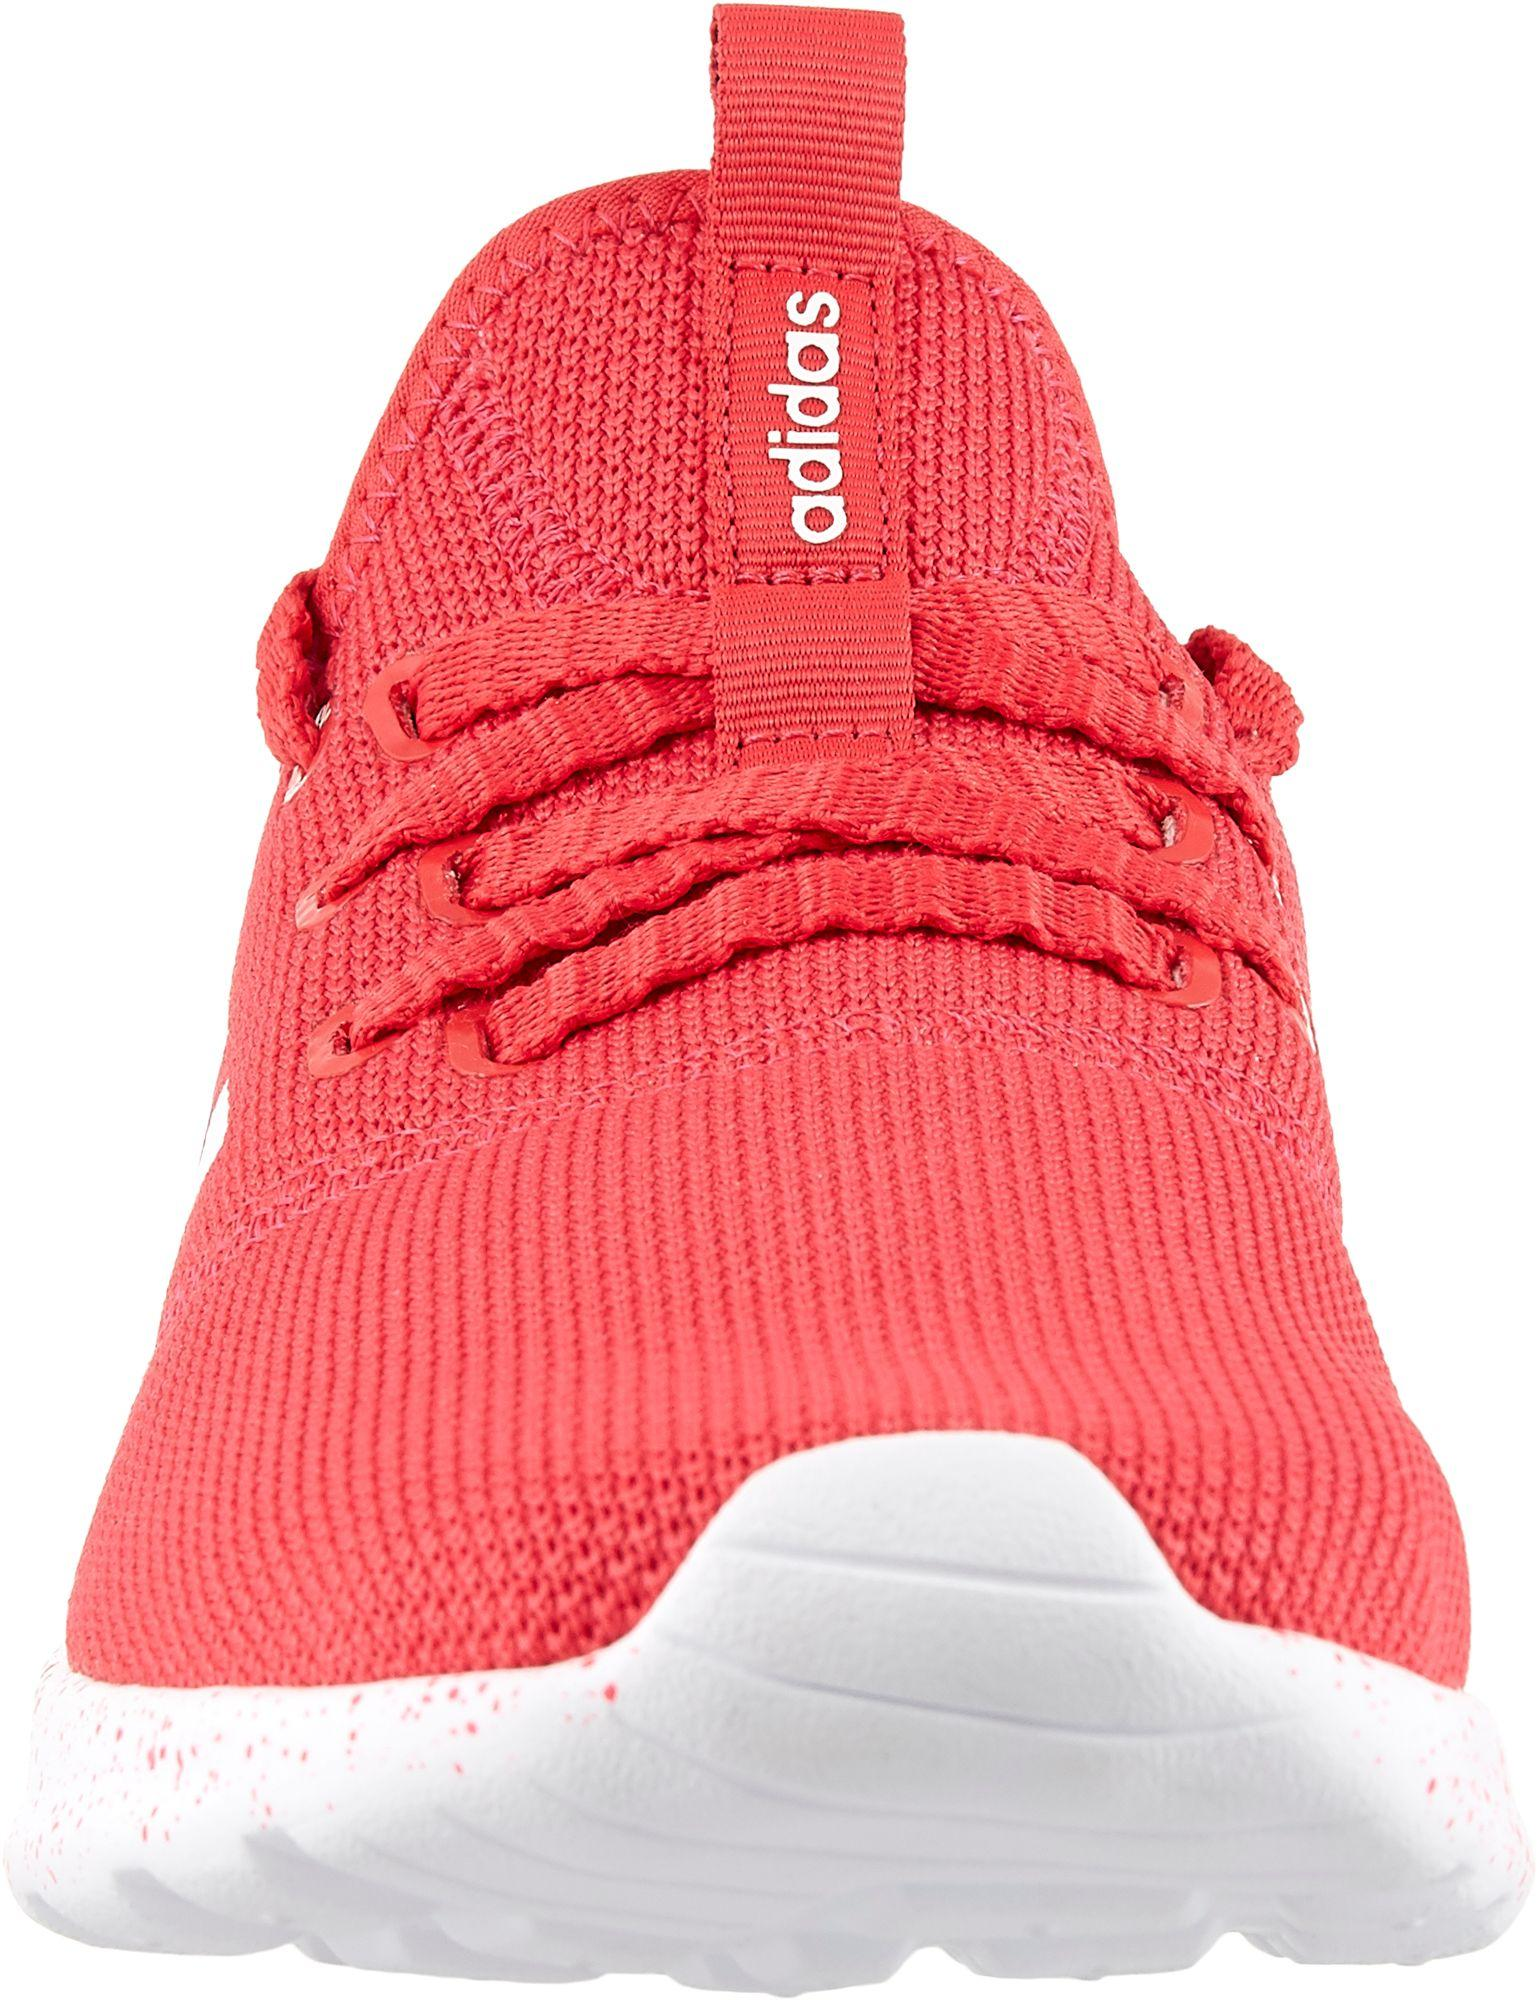 Cloudfoam Pure Shoes in Red Coral/White